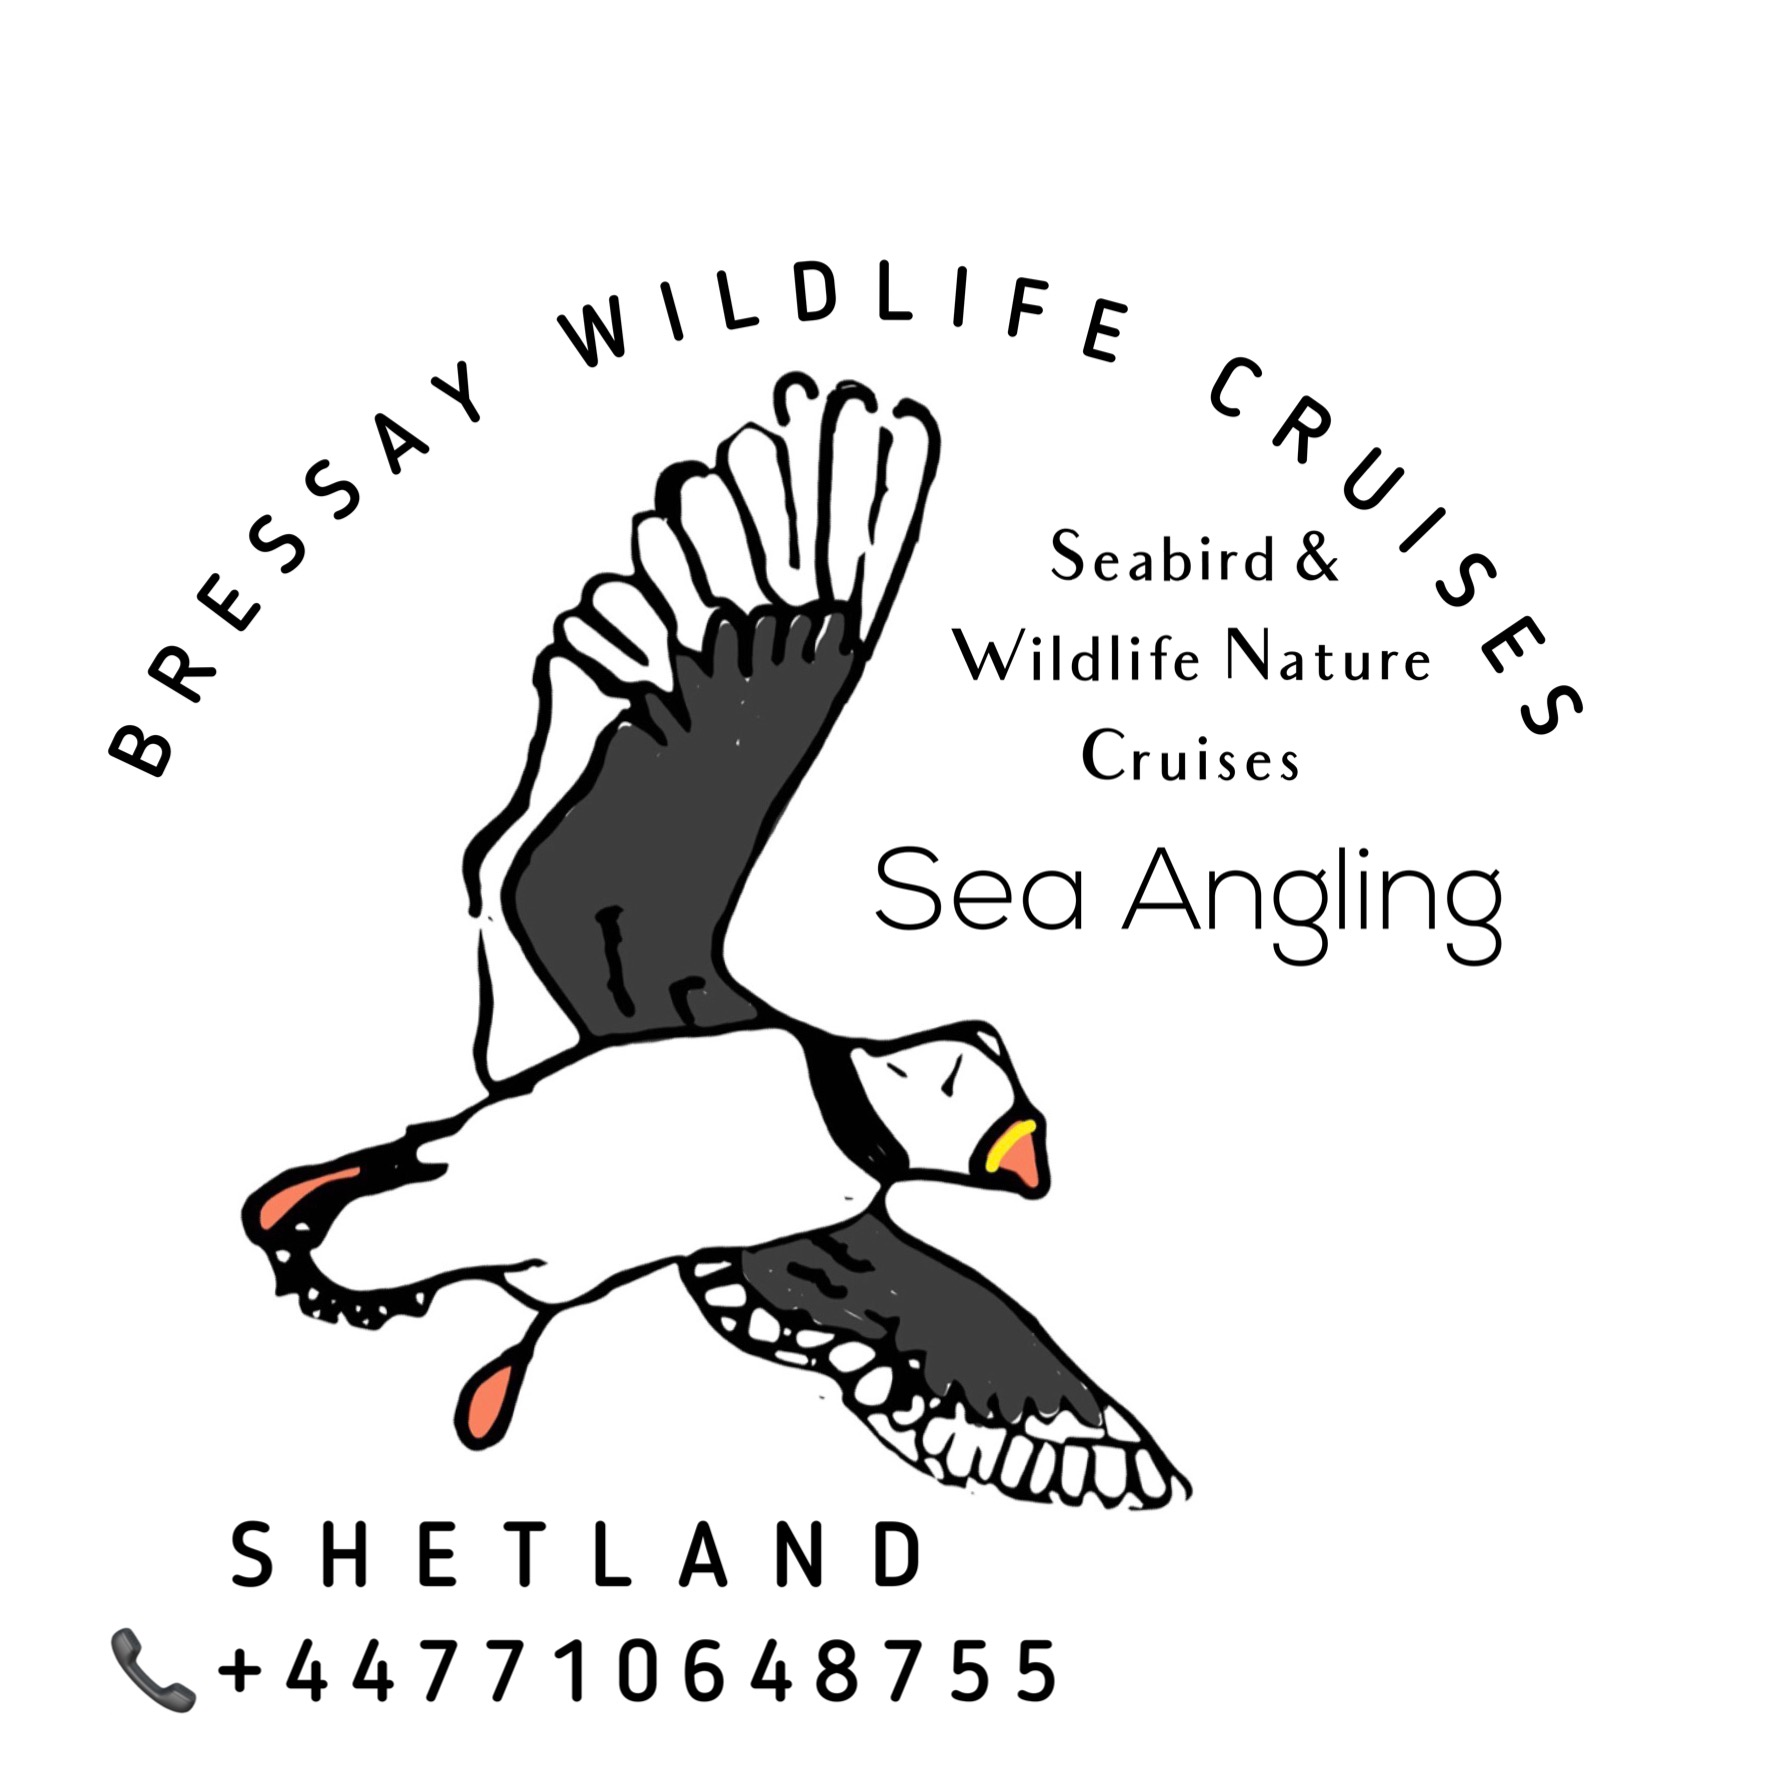 BRESSAY WILDLIFE CRUISES